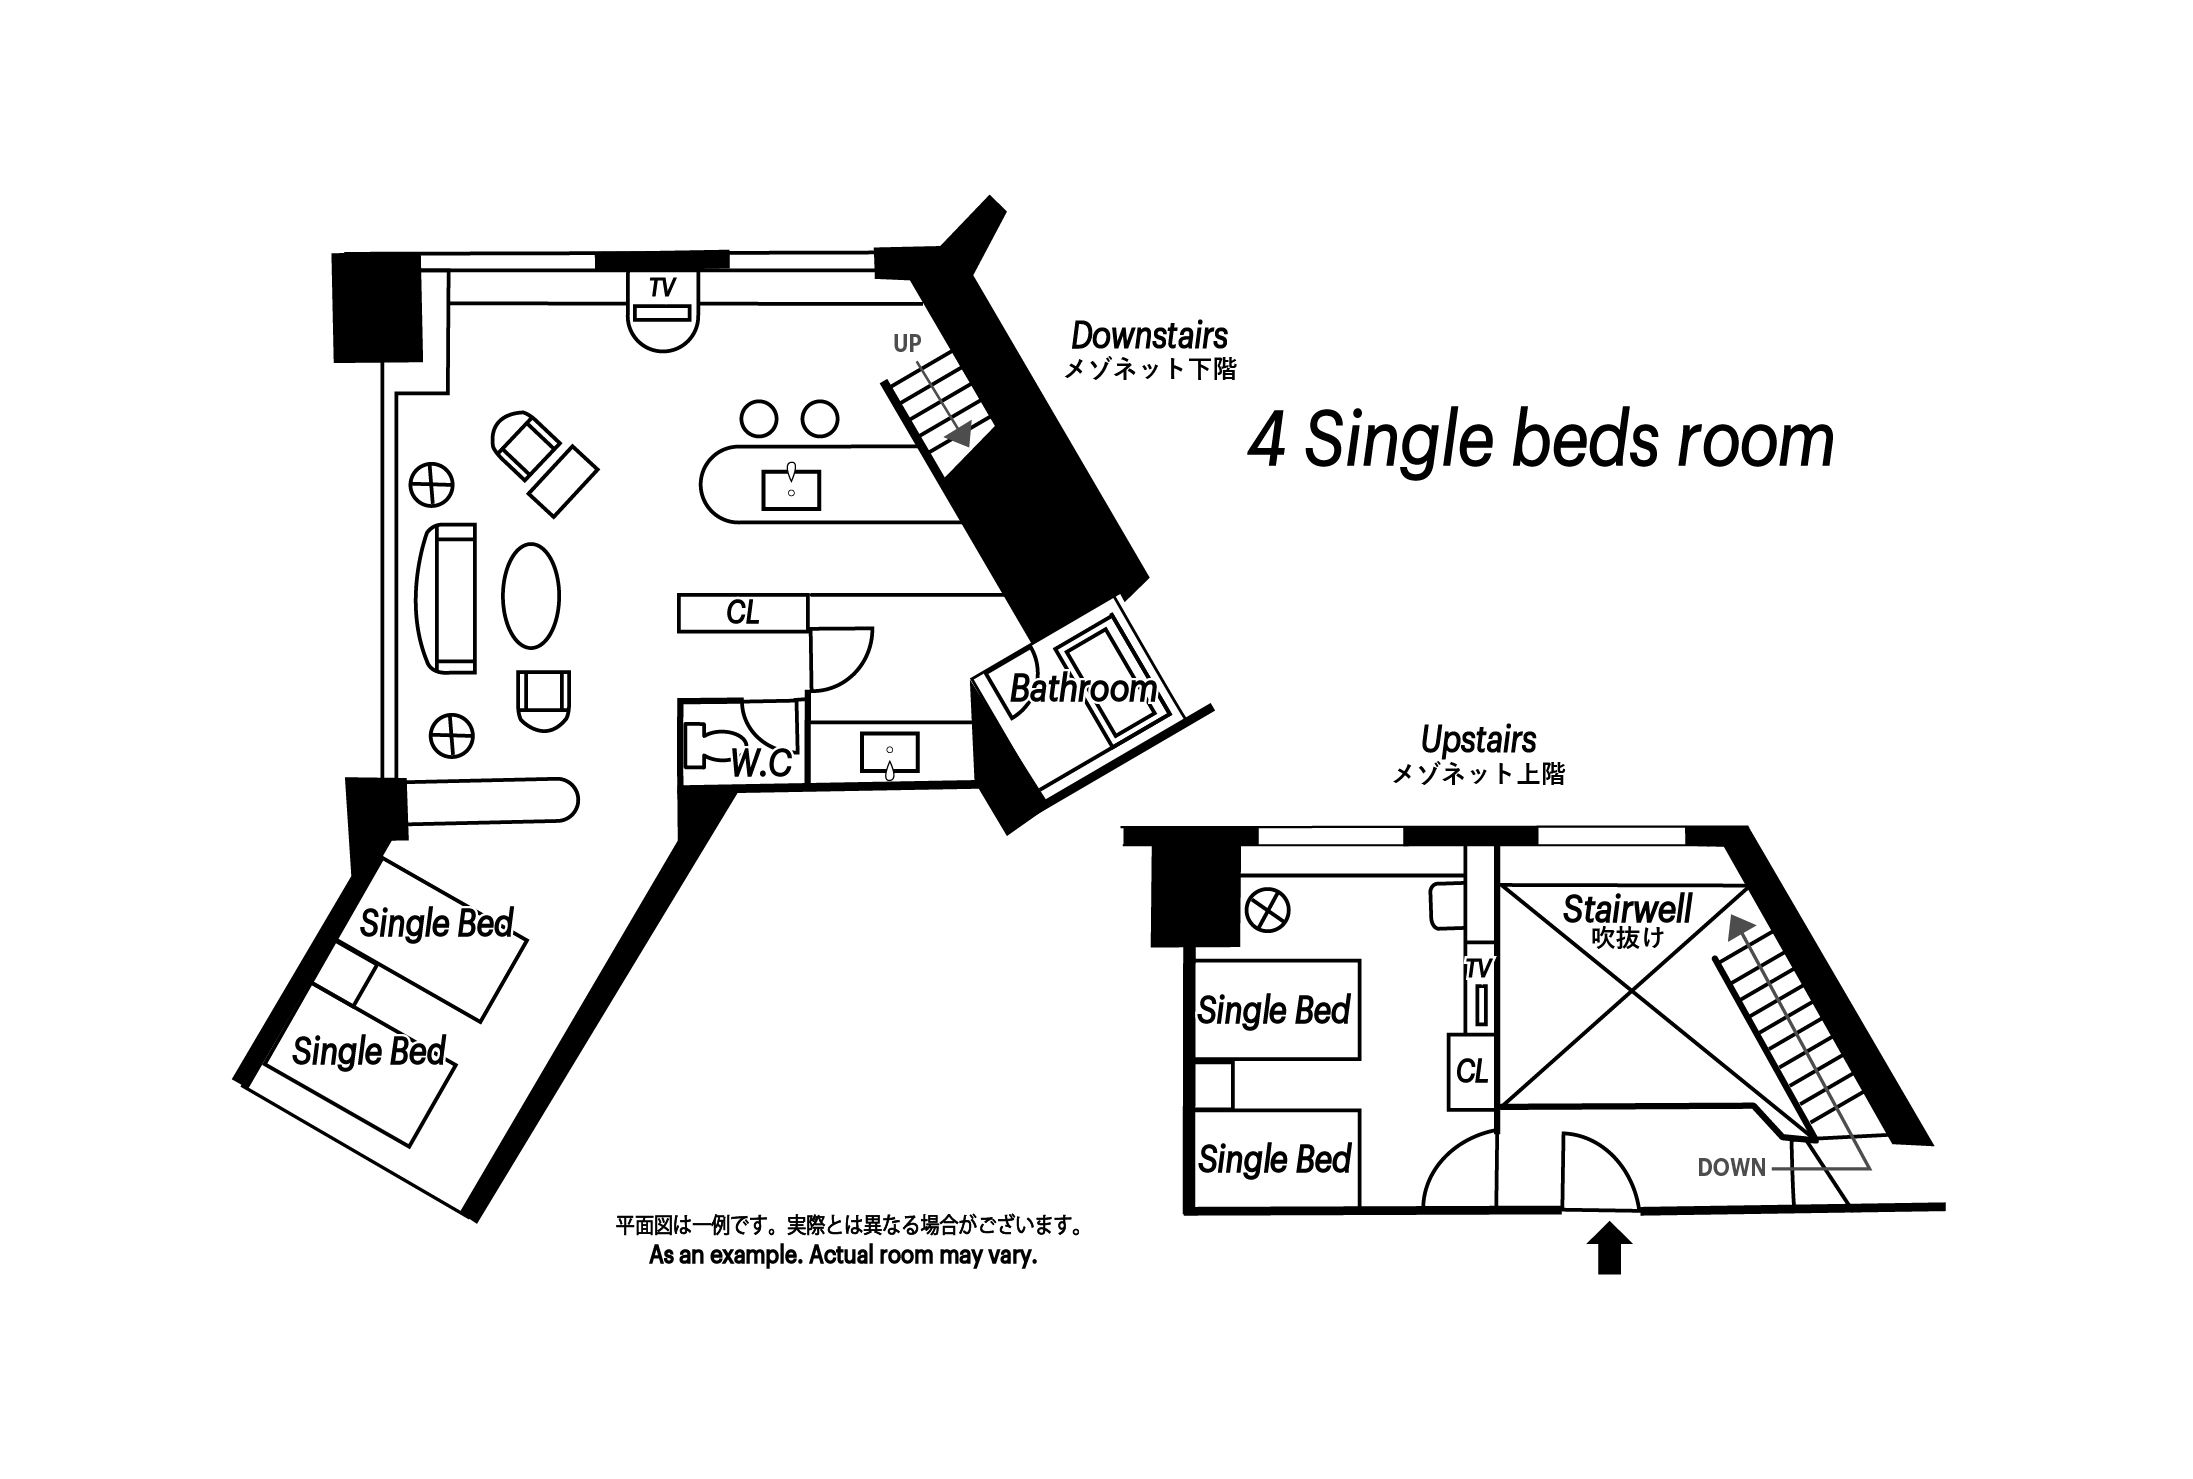 Deluxe 4 Single Beds